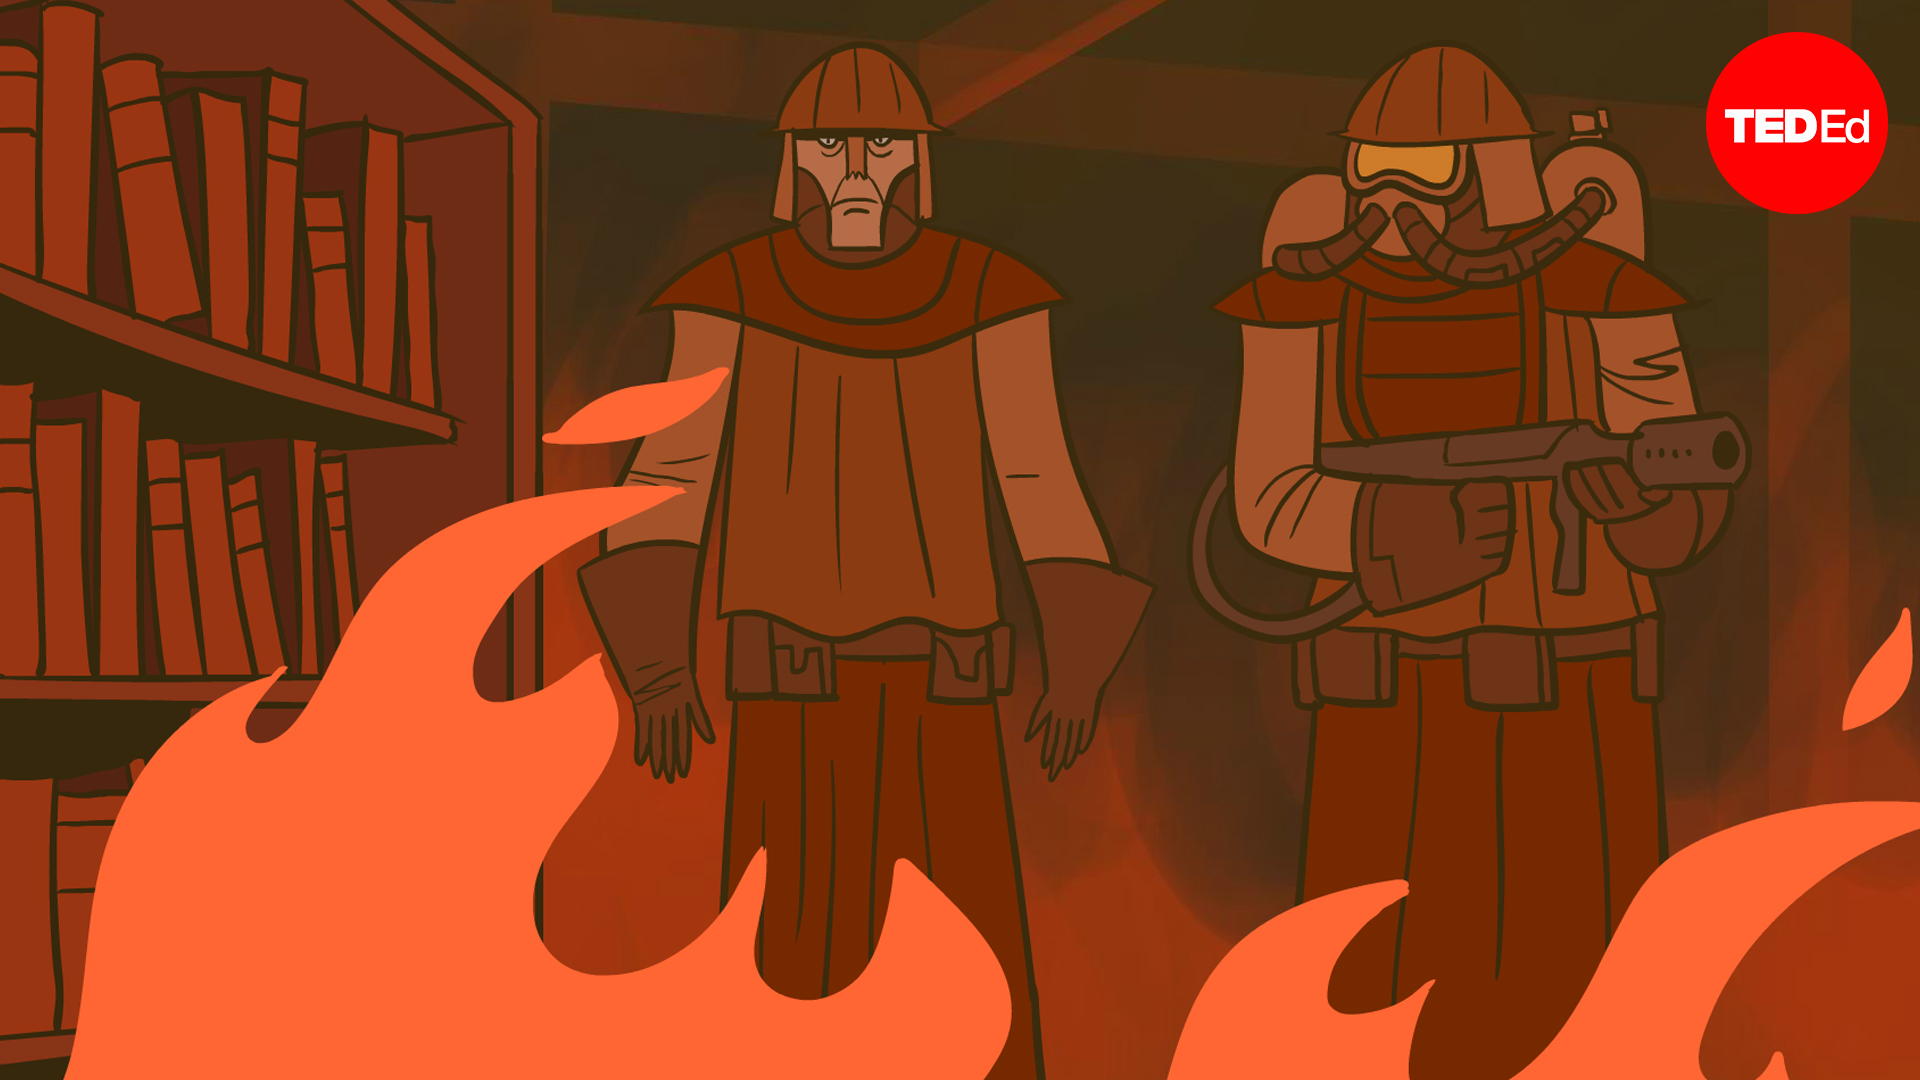 Why Should You Read Fahrenheit 451